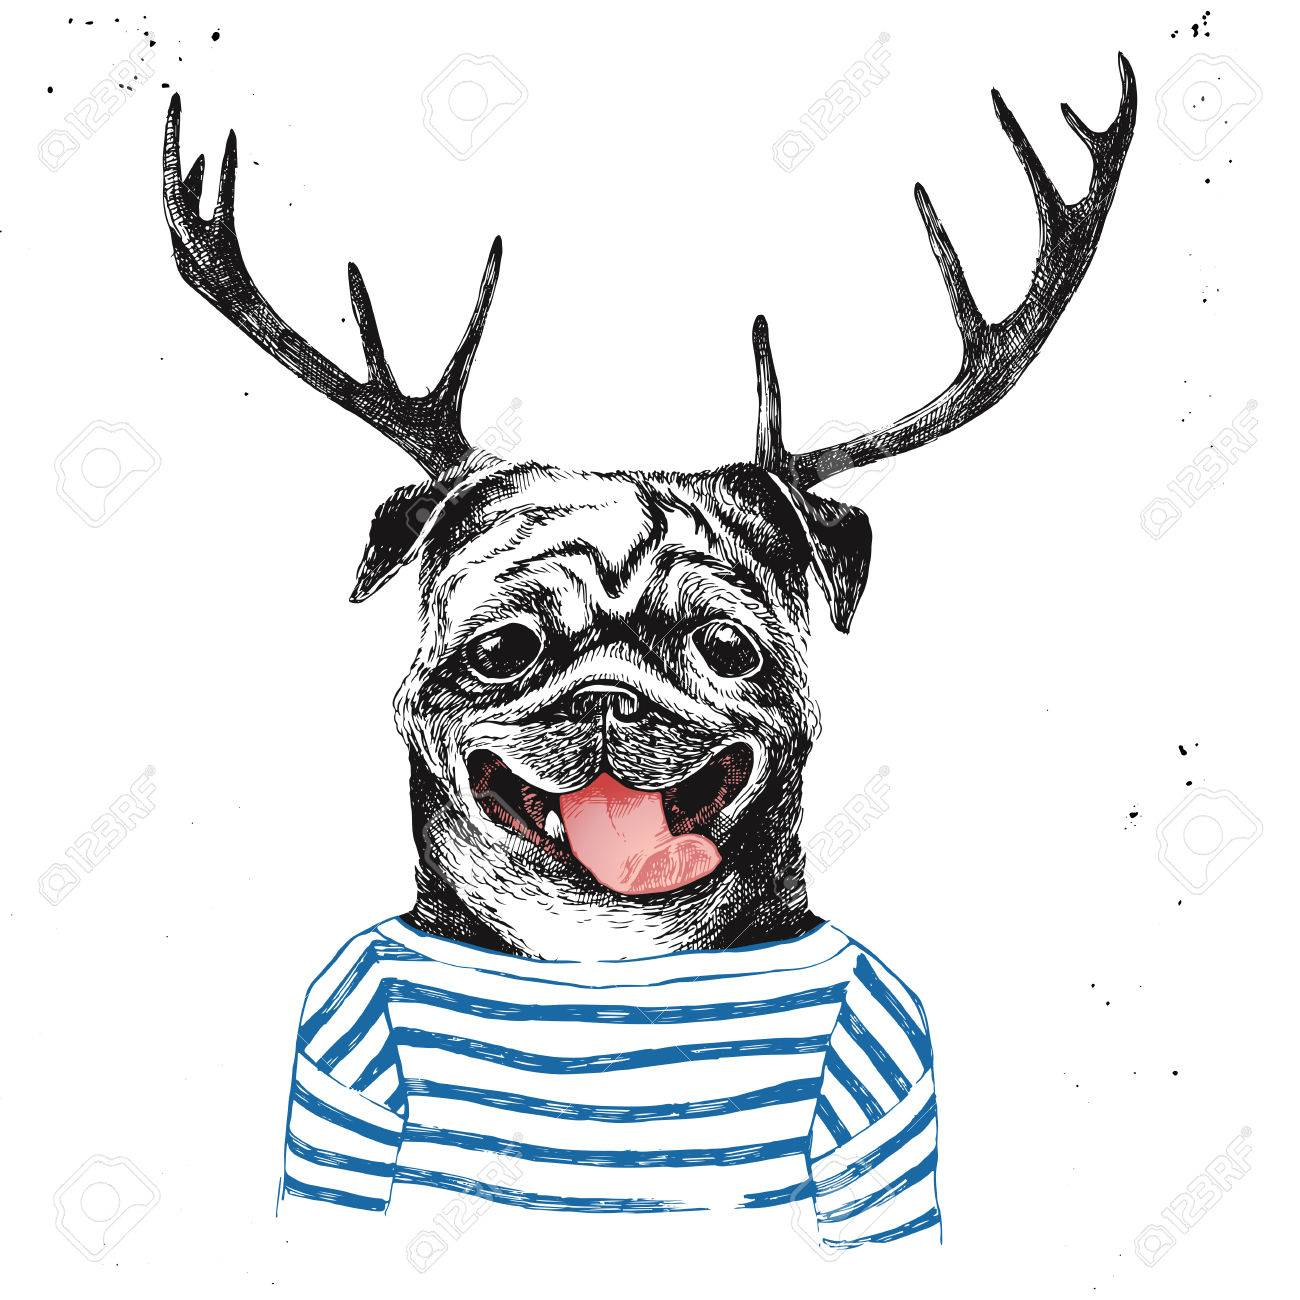 Hand drawn dressed up pug in hipster style with deer horns - 64111525